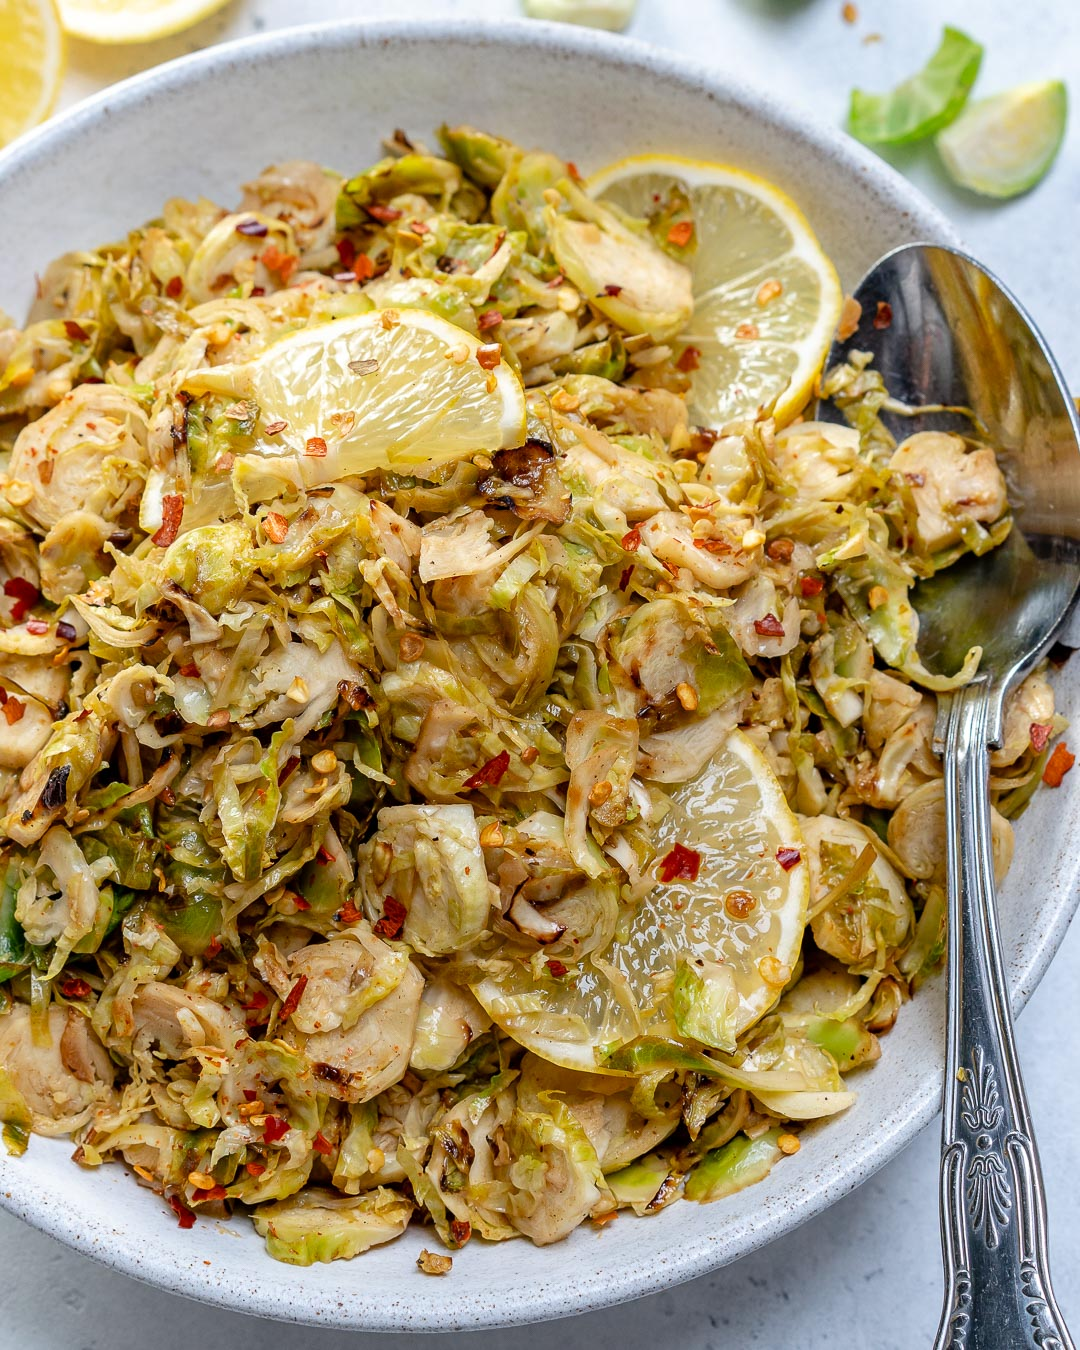 Lemony Shredded Brussels Sprouts side Dish by Rachel Maser